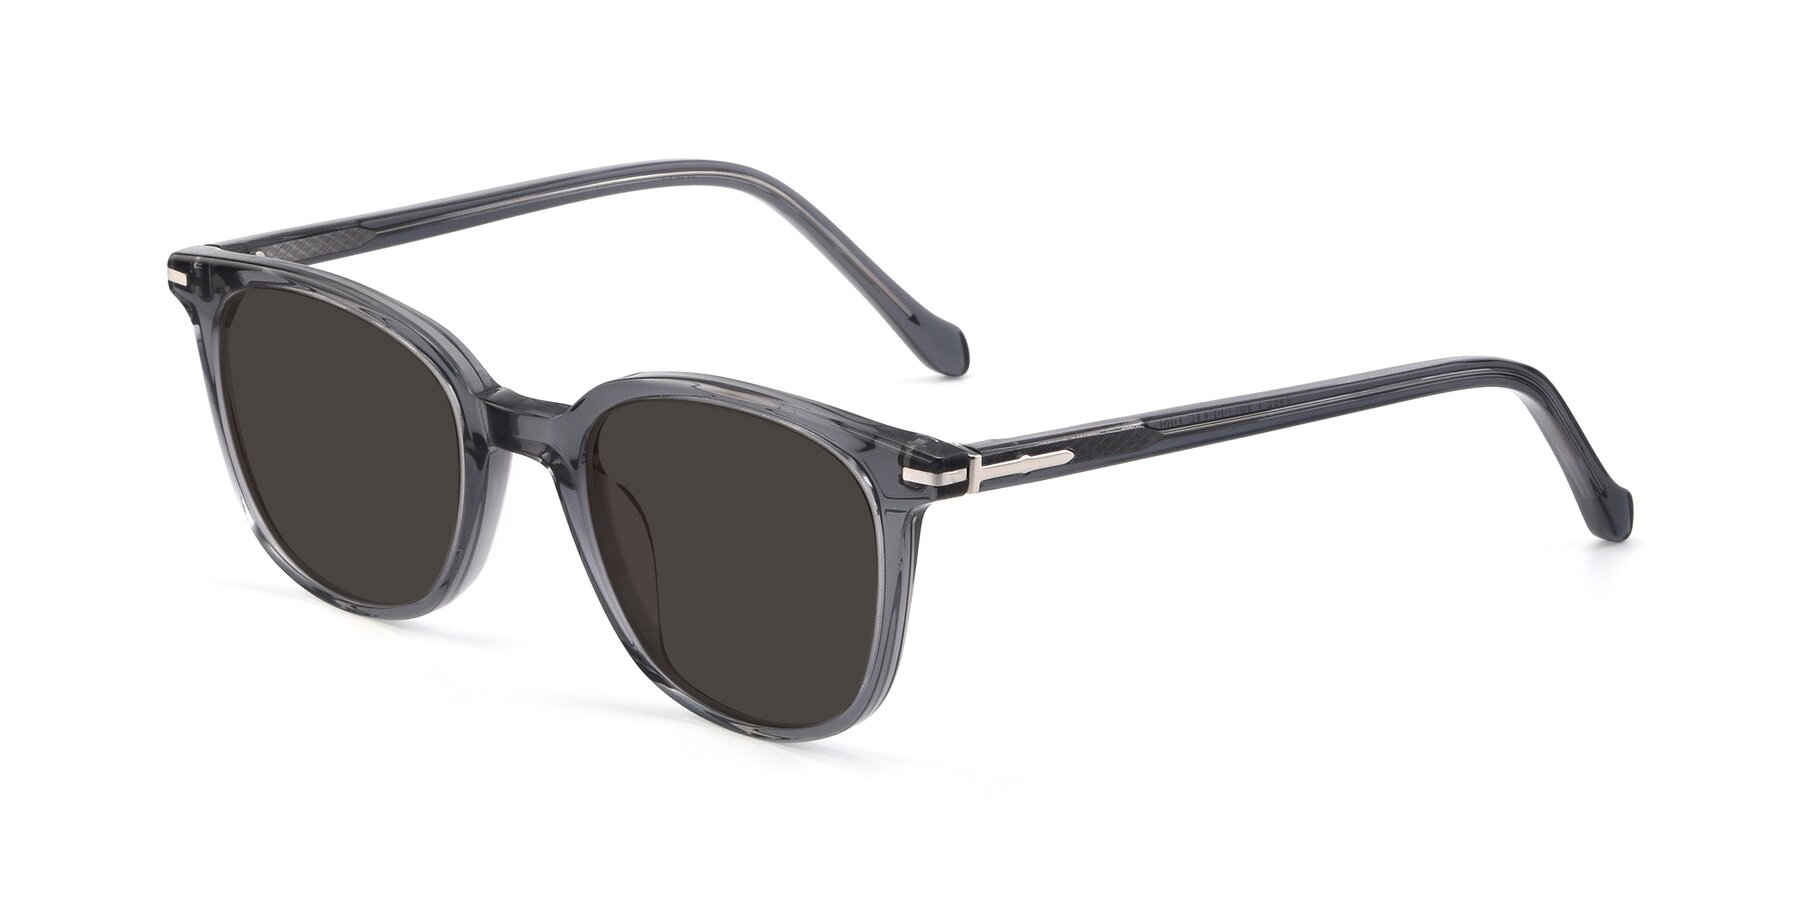 Angle of 17562 in Transparent Grey with Gray Tinted Lenses